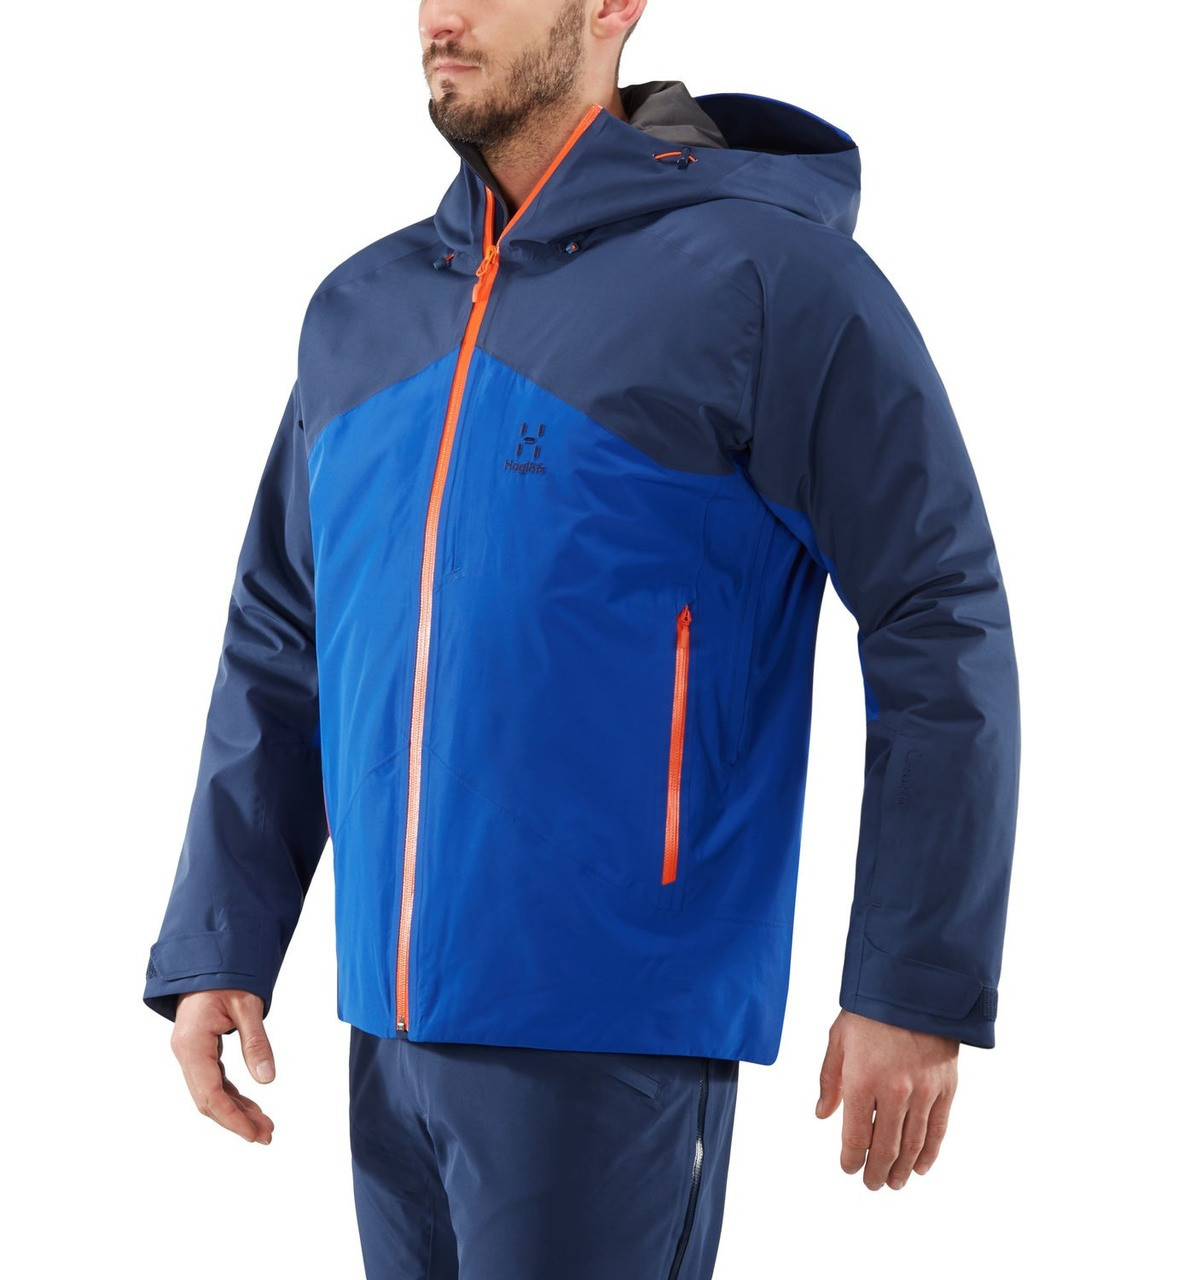 haglofs niva insulated jacket men's ski jacket in tarn blue cobalt blue worn by model